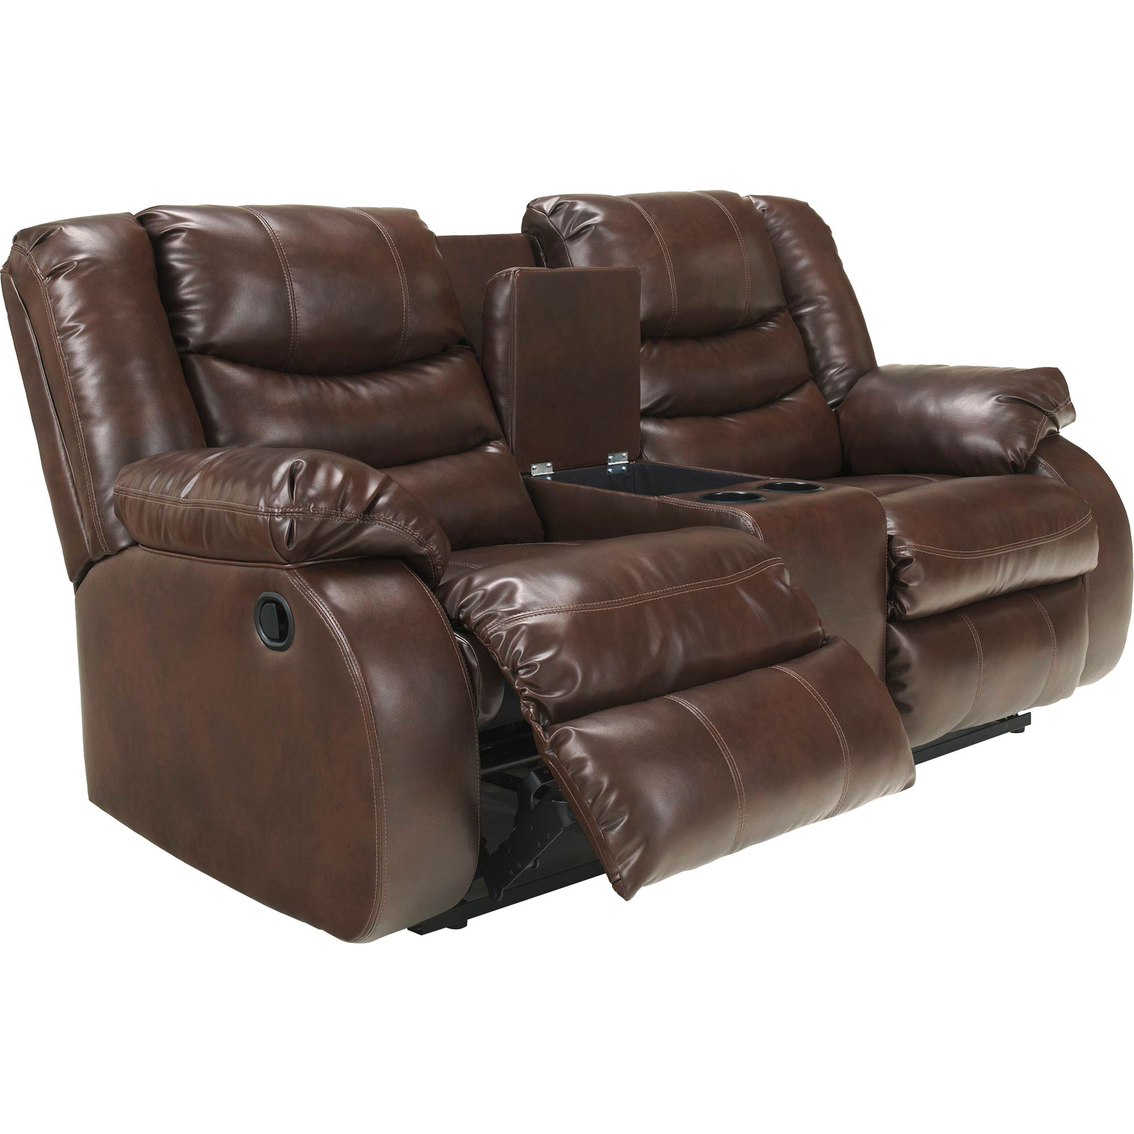 1573  sc 1 st  Exchange & Ashley Linebacker Reclining Console Loveseat | Ashley Furniture ... islam-shia.org